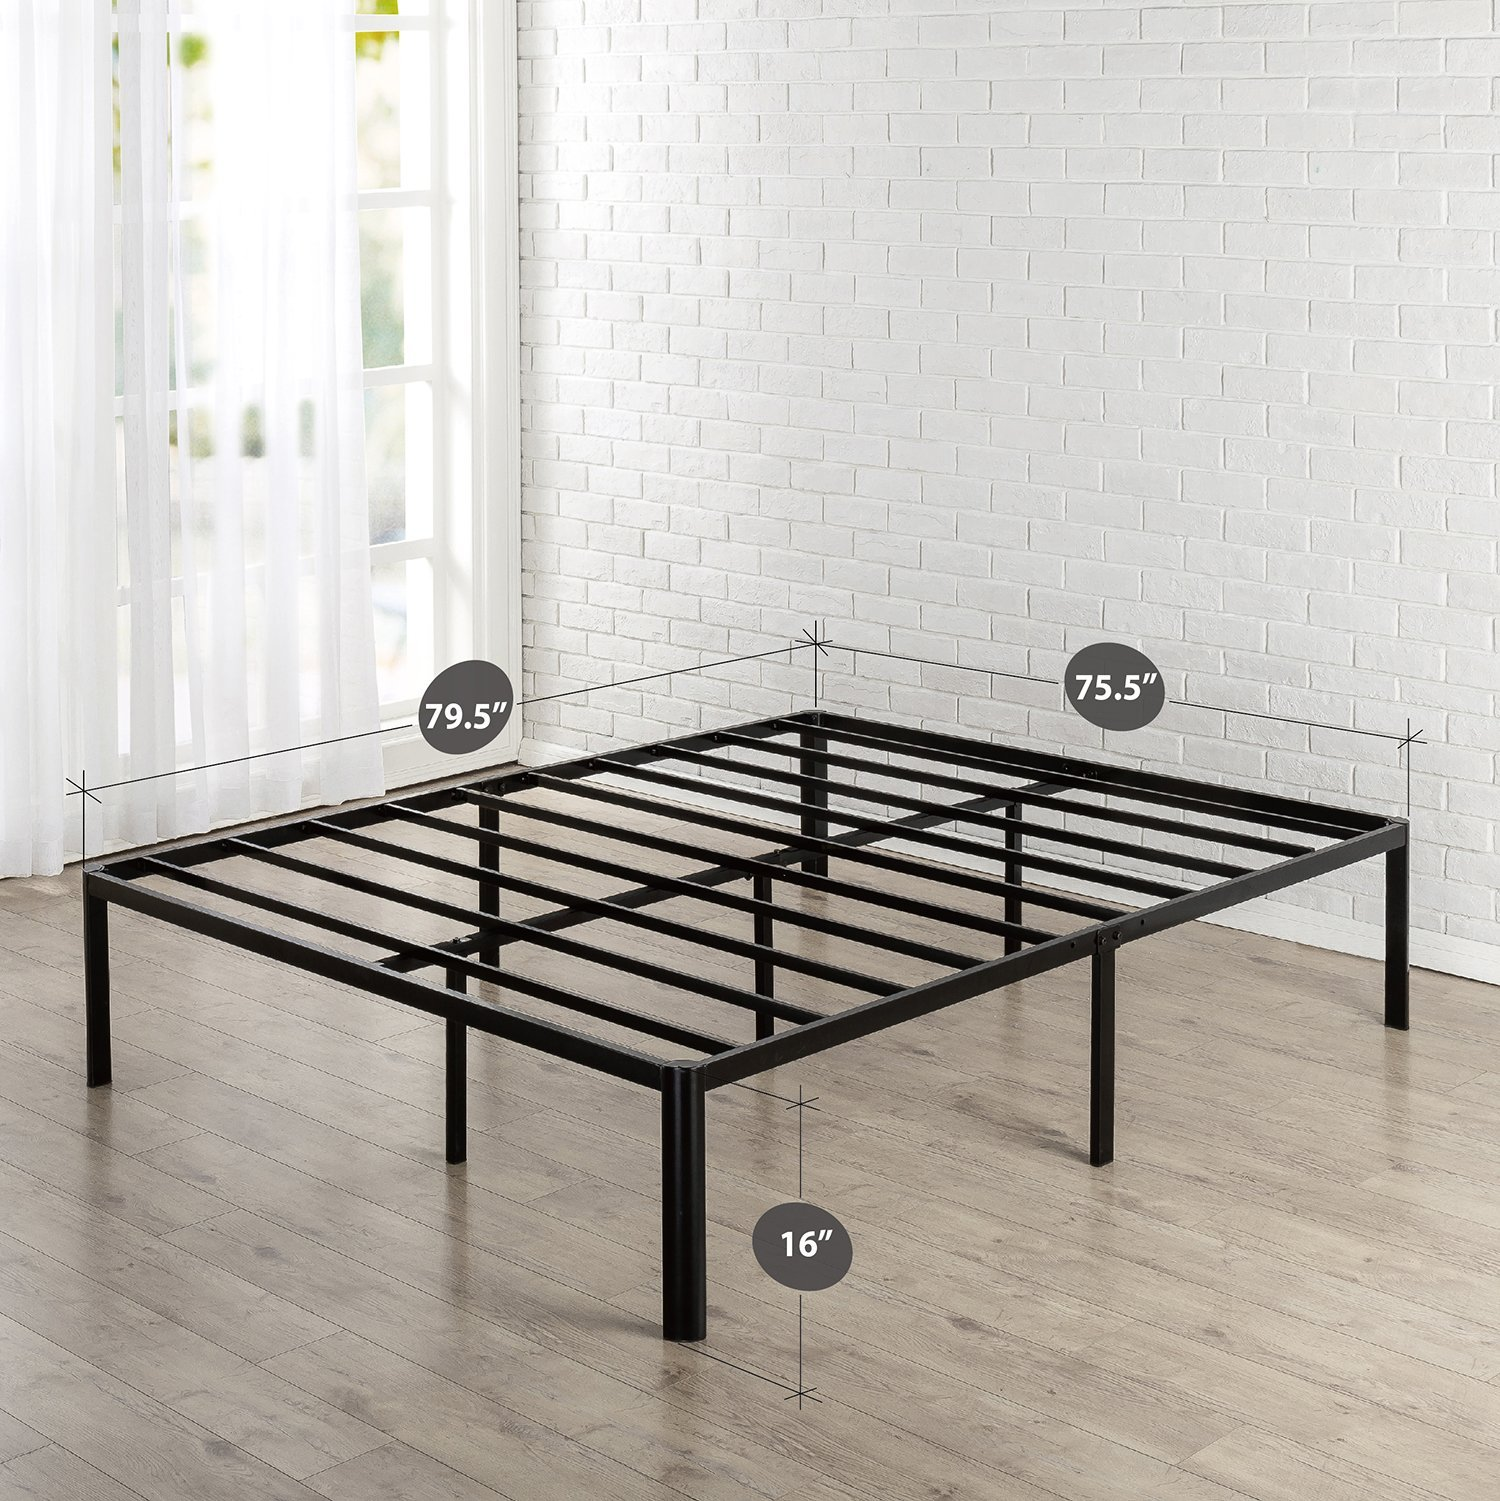 Zinus Van 16 Inch Metal Platform Bed Frame with Steel Slat Support / Mattress Foundation, King by Zinus (Image #2)